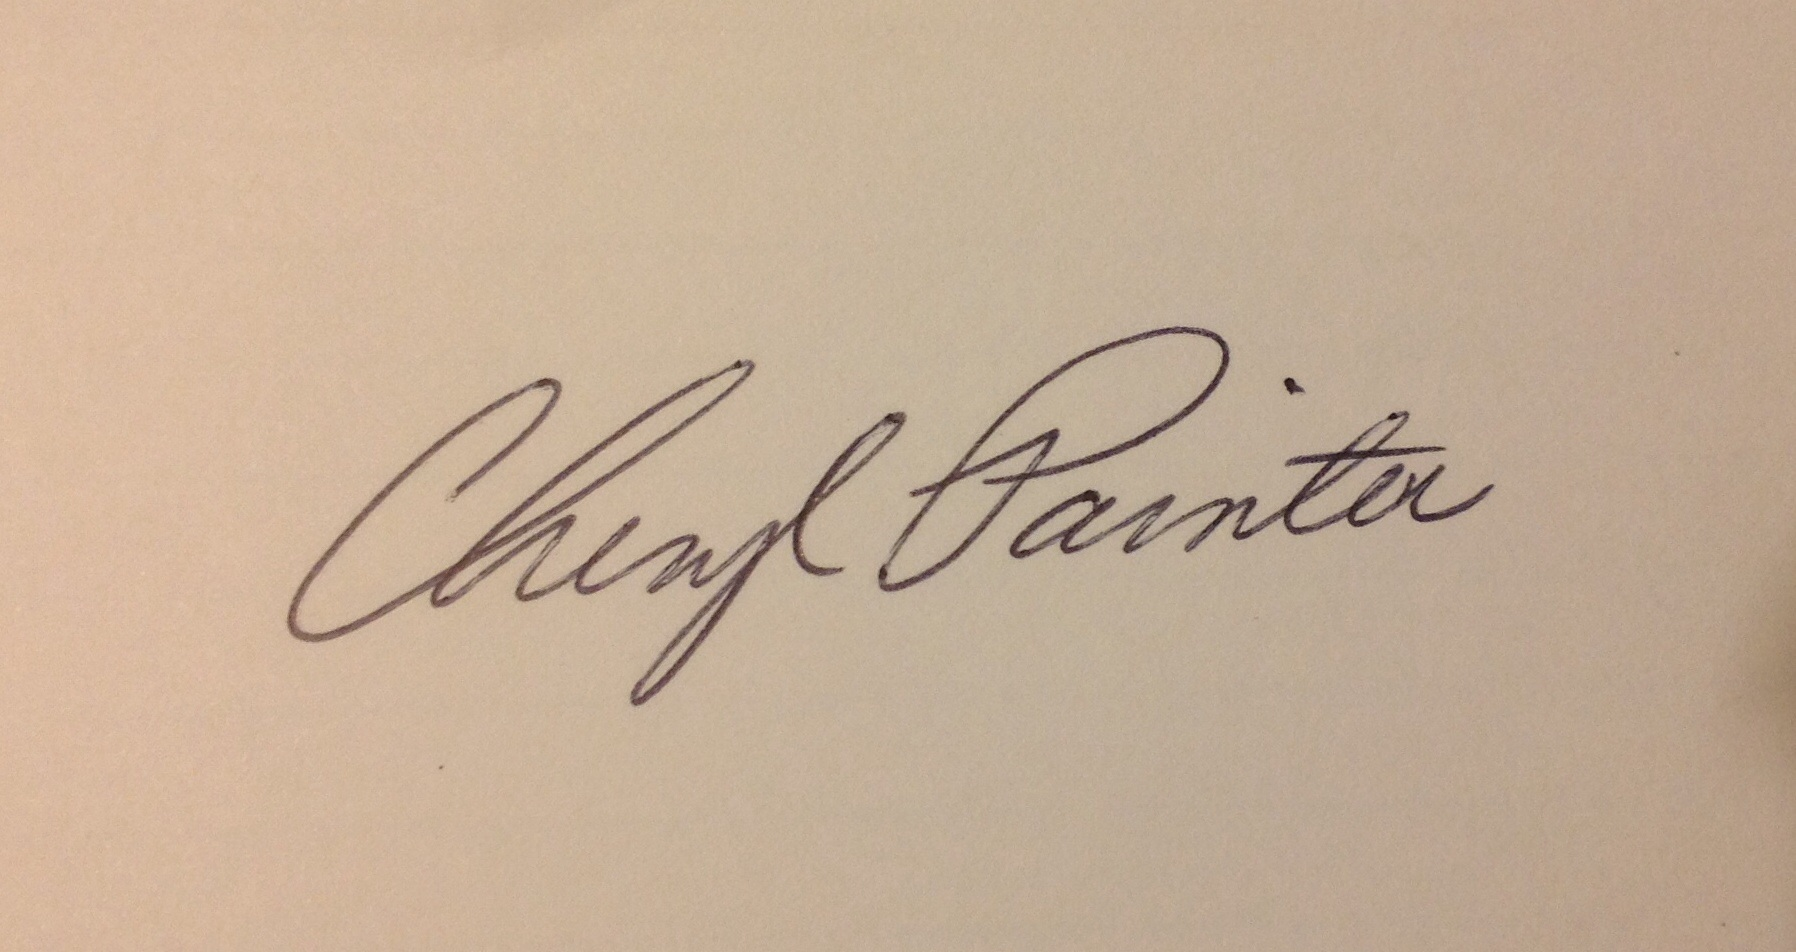 Cheryl Painter's Signature